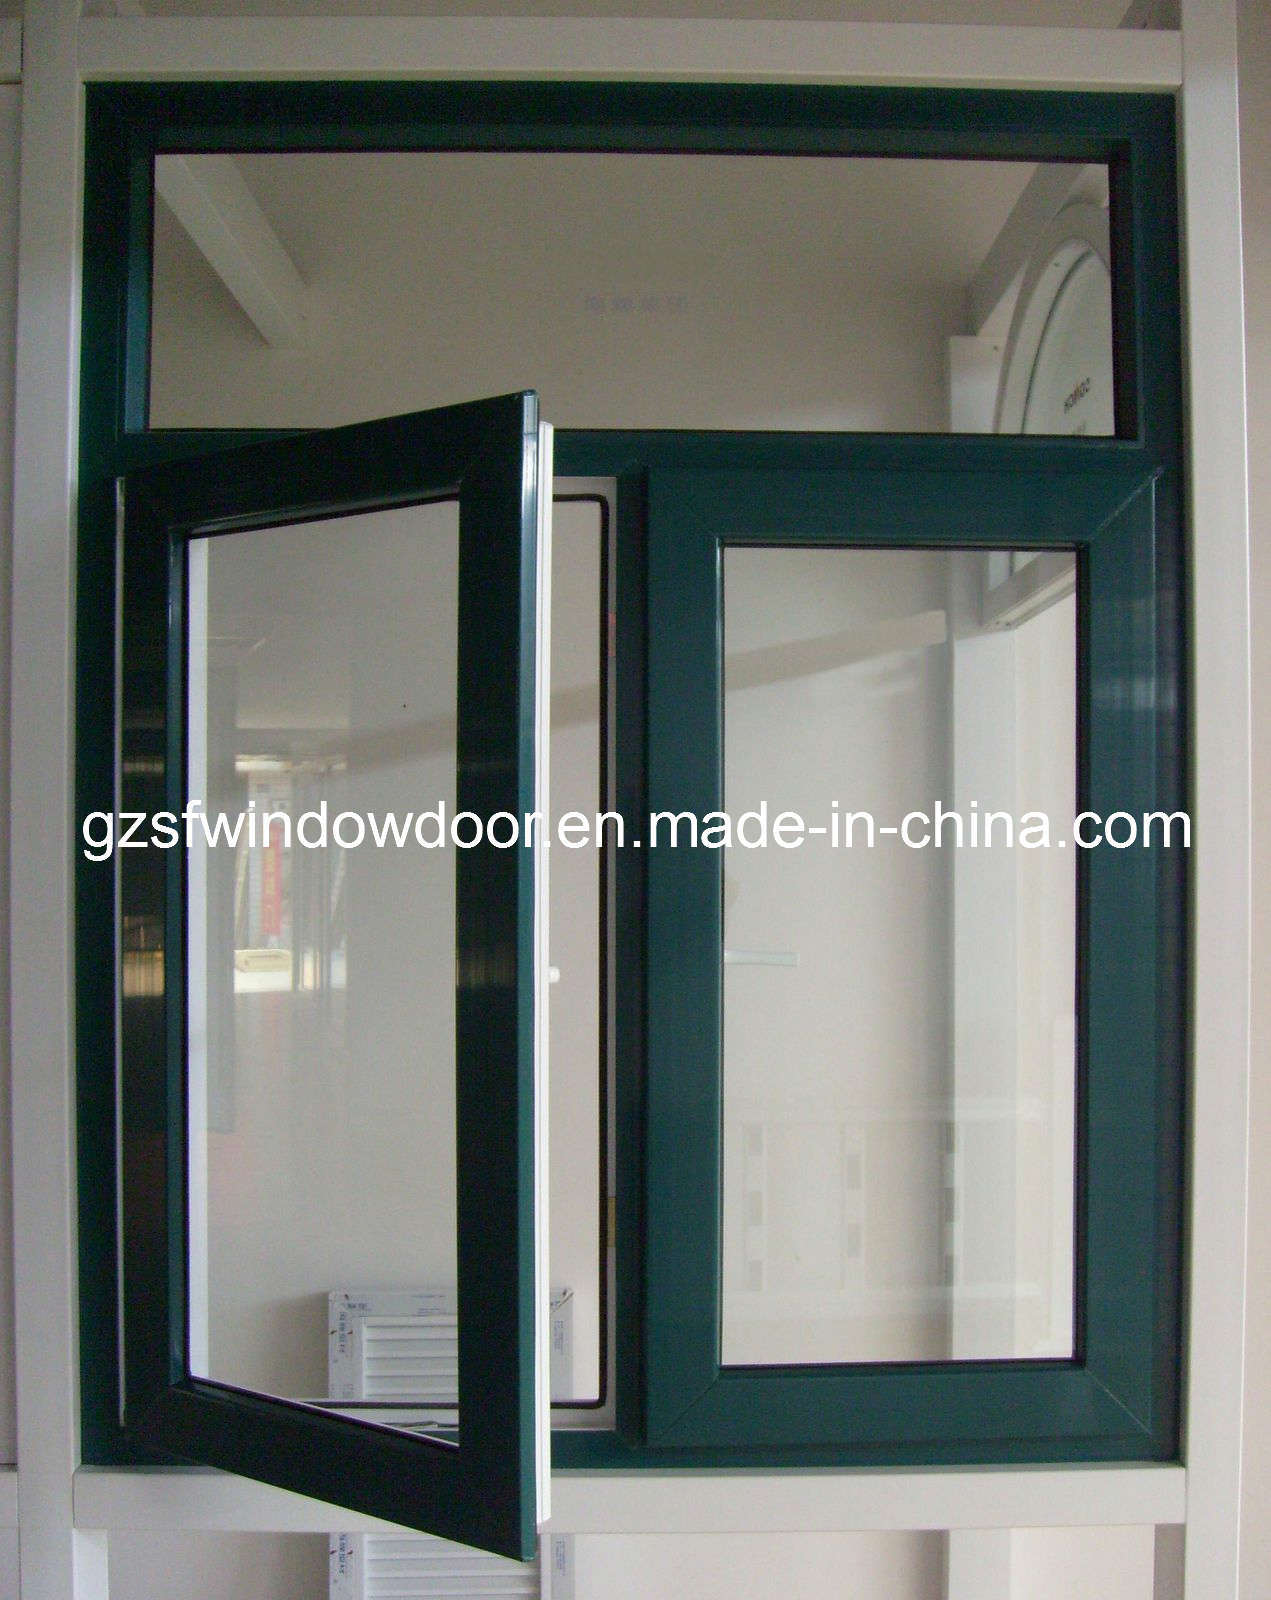 Upvc windows joy studio design gallery best design for Upvc window designs